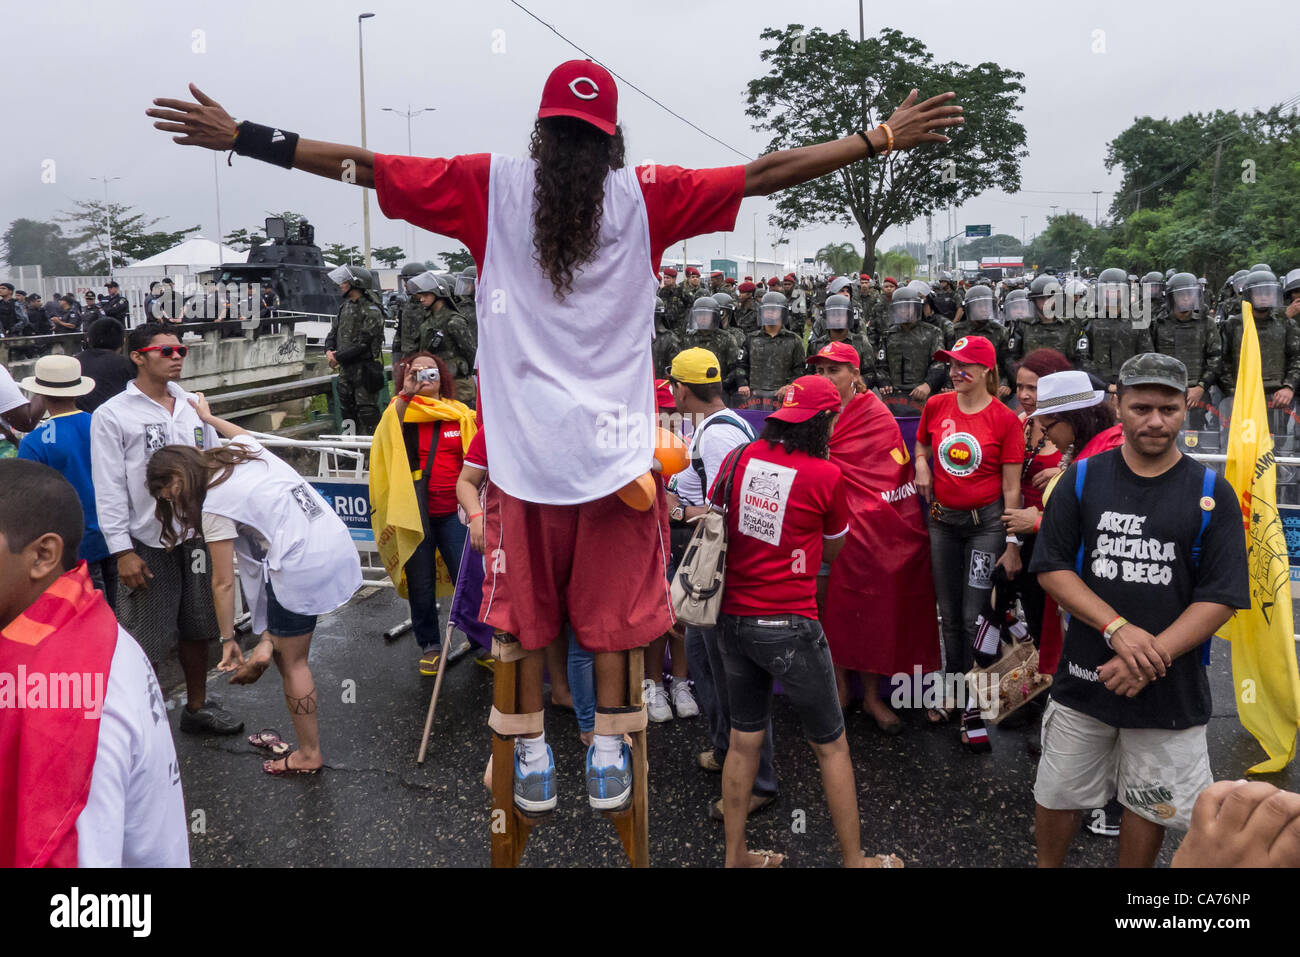 A demonstrator on stilts faces shock troops across a barrier at a demonstration by indigenous people, the Landless - Stock Image